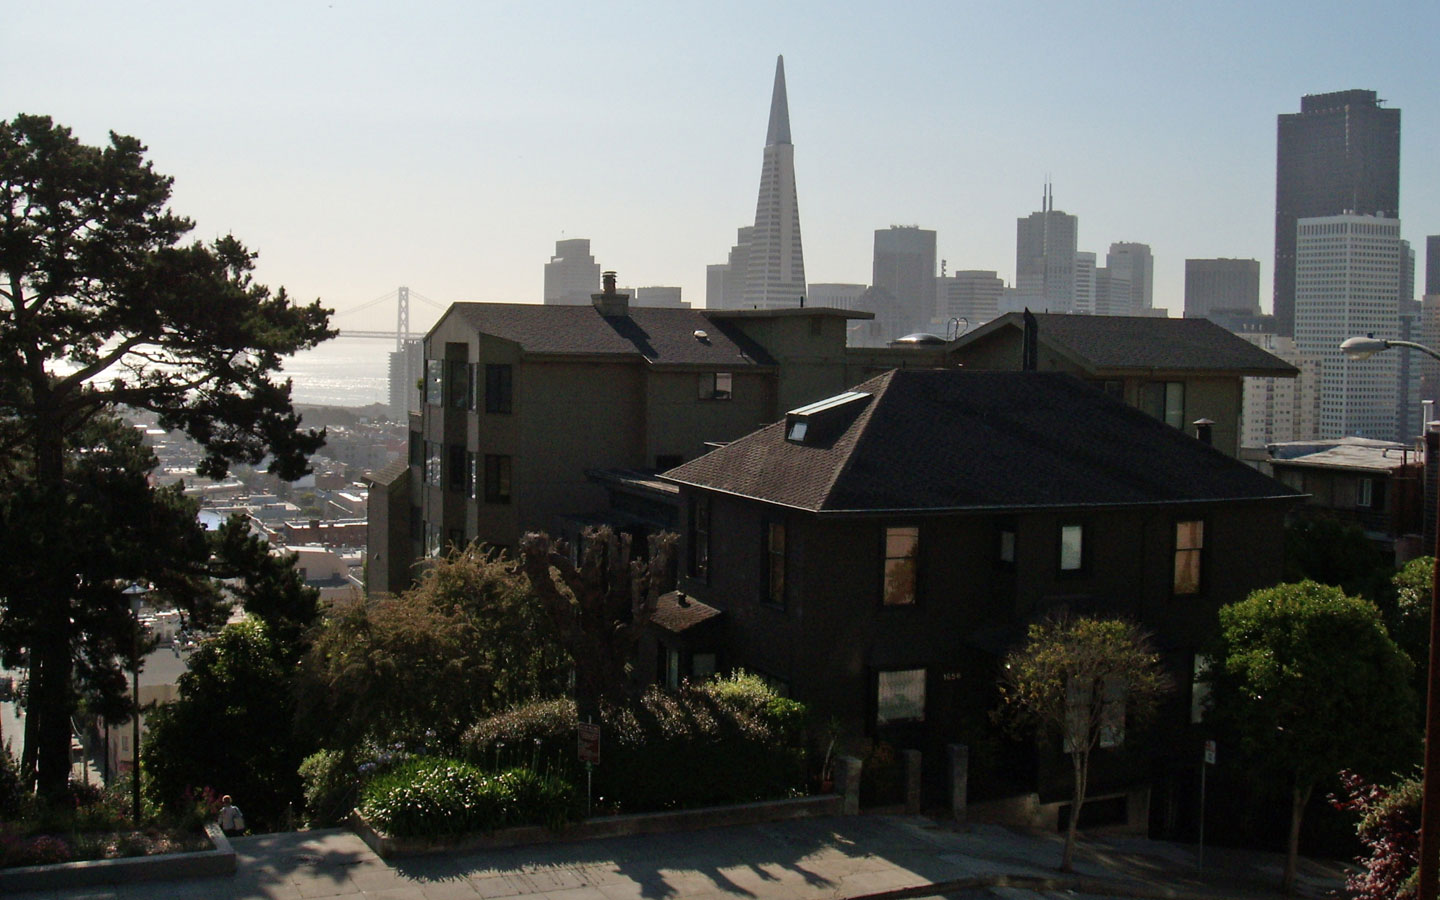 This picture was taken at Russion Hill in San Francisco with view to Financial Distrct.